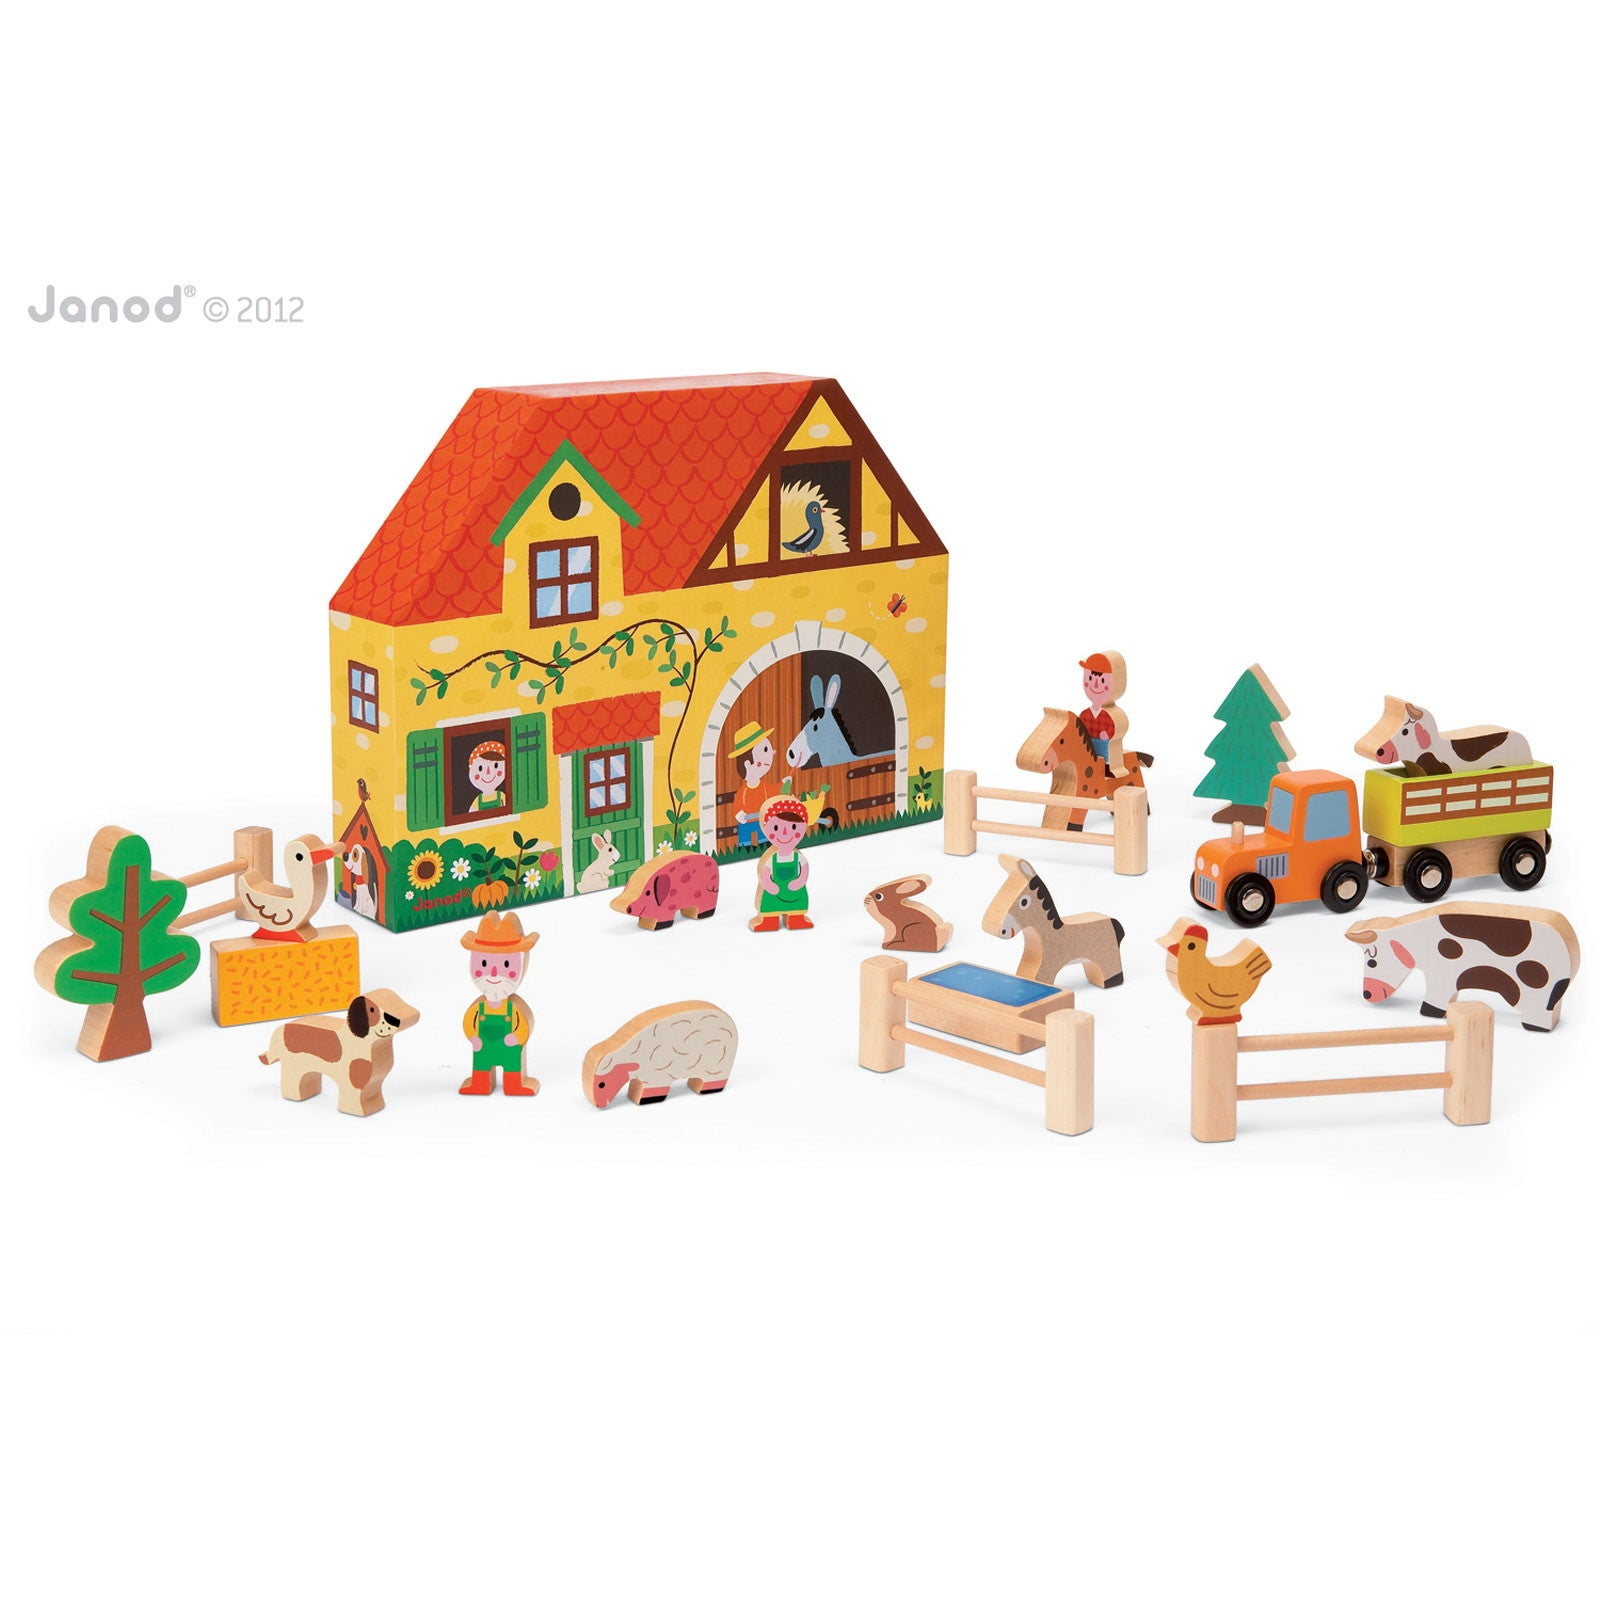 Shop for Janod Toys - Wooden Toys - Little Earth Nest